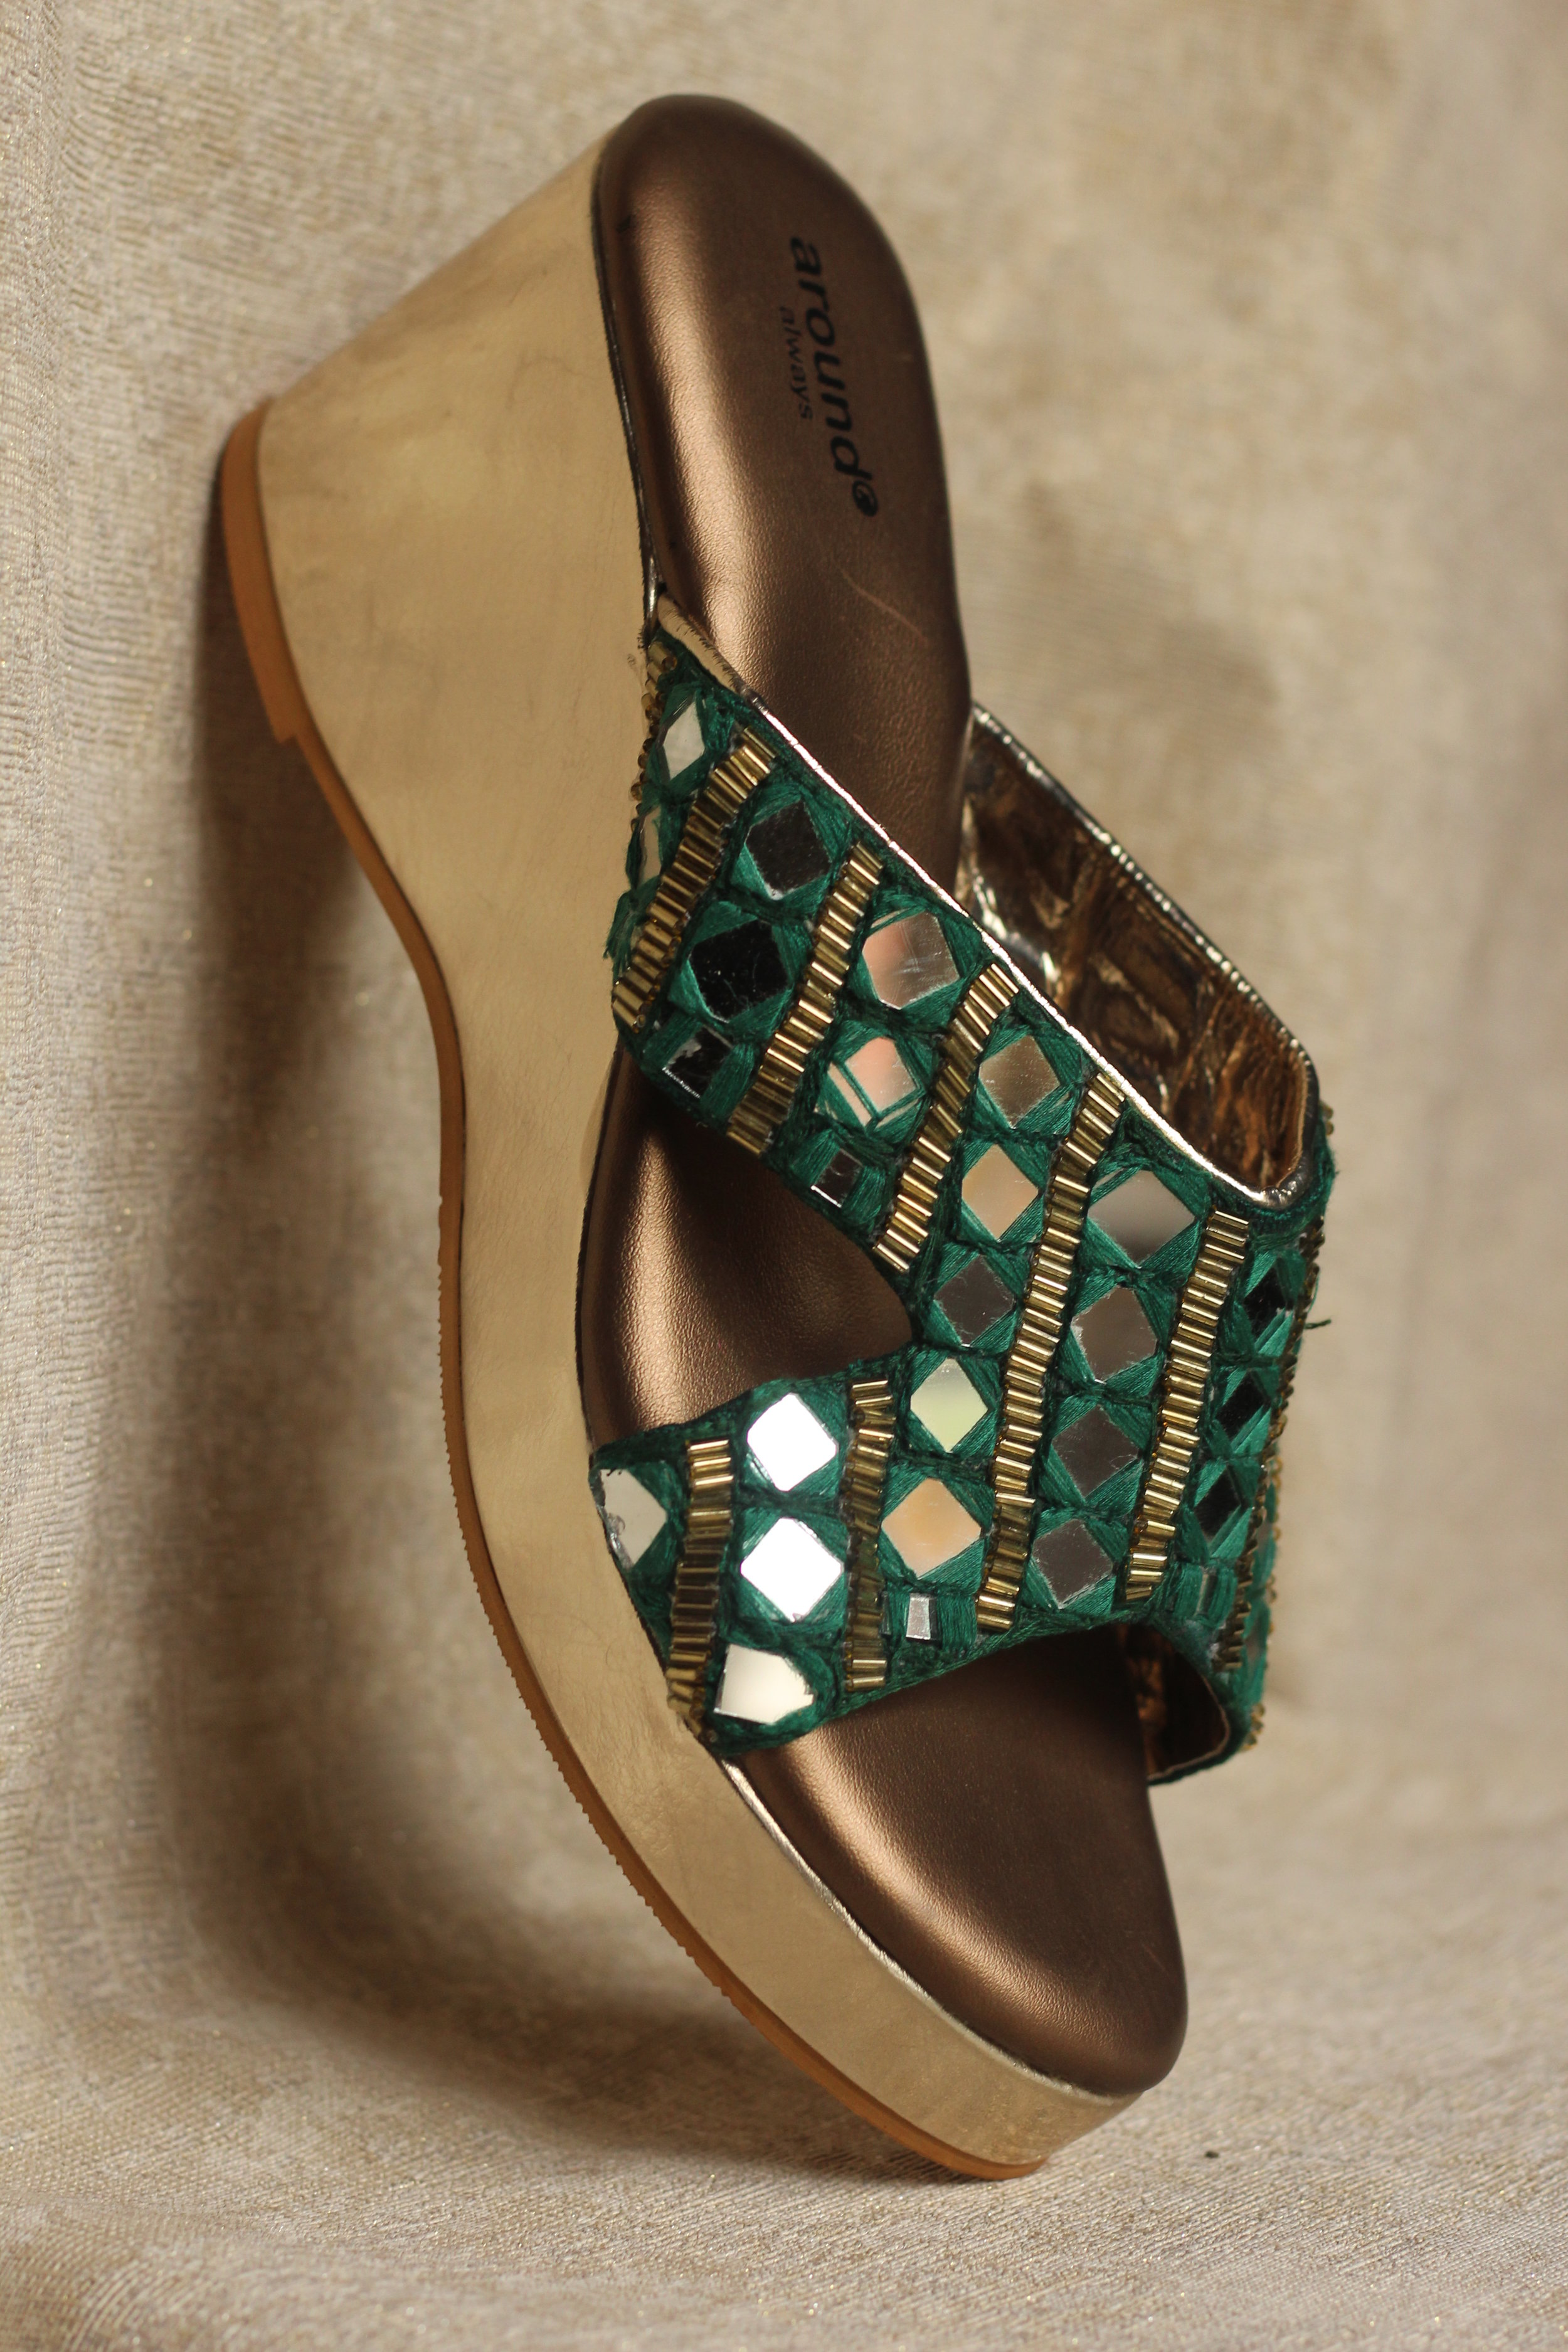 AURELIA - The perfect combination of bling and beauty, this pair will ensure you shine bright on your most important days